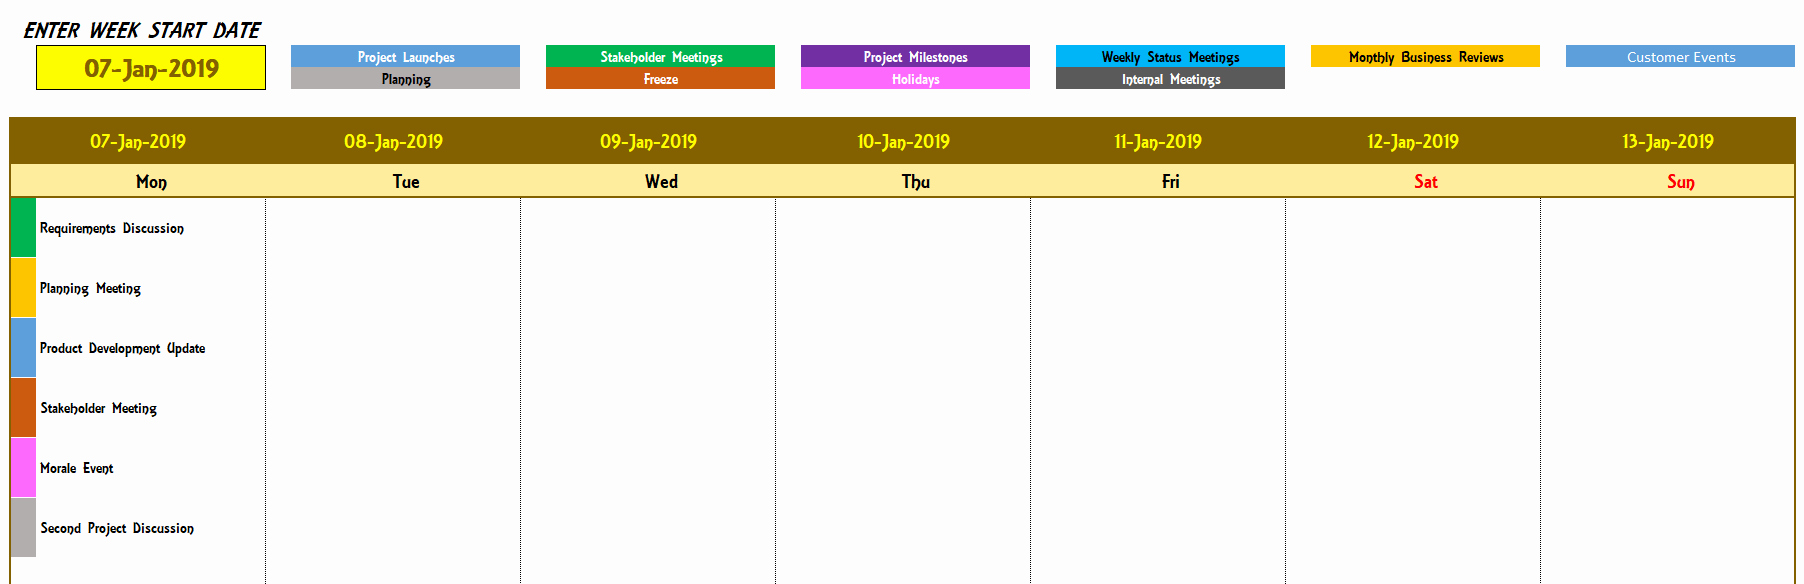 Calendar Of events Template New Excel Calendar Template Excel Calendar 2019 2020 or Any